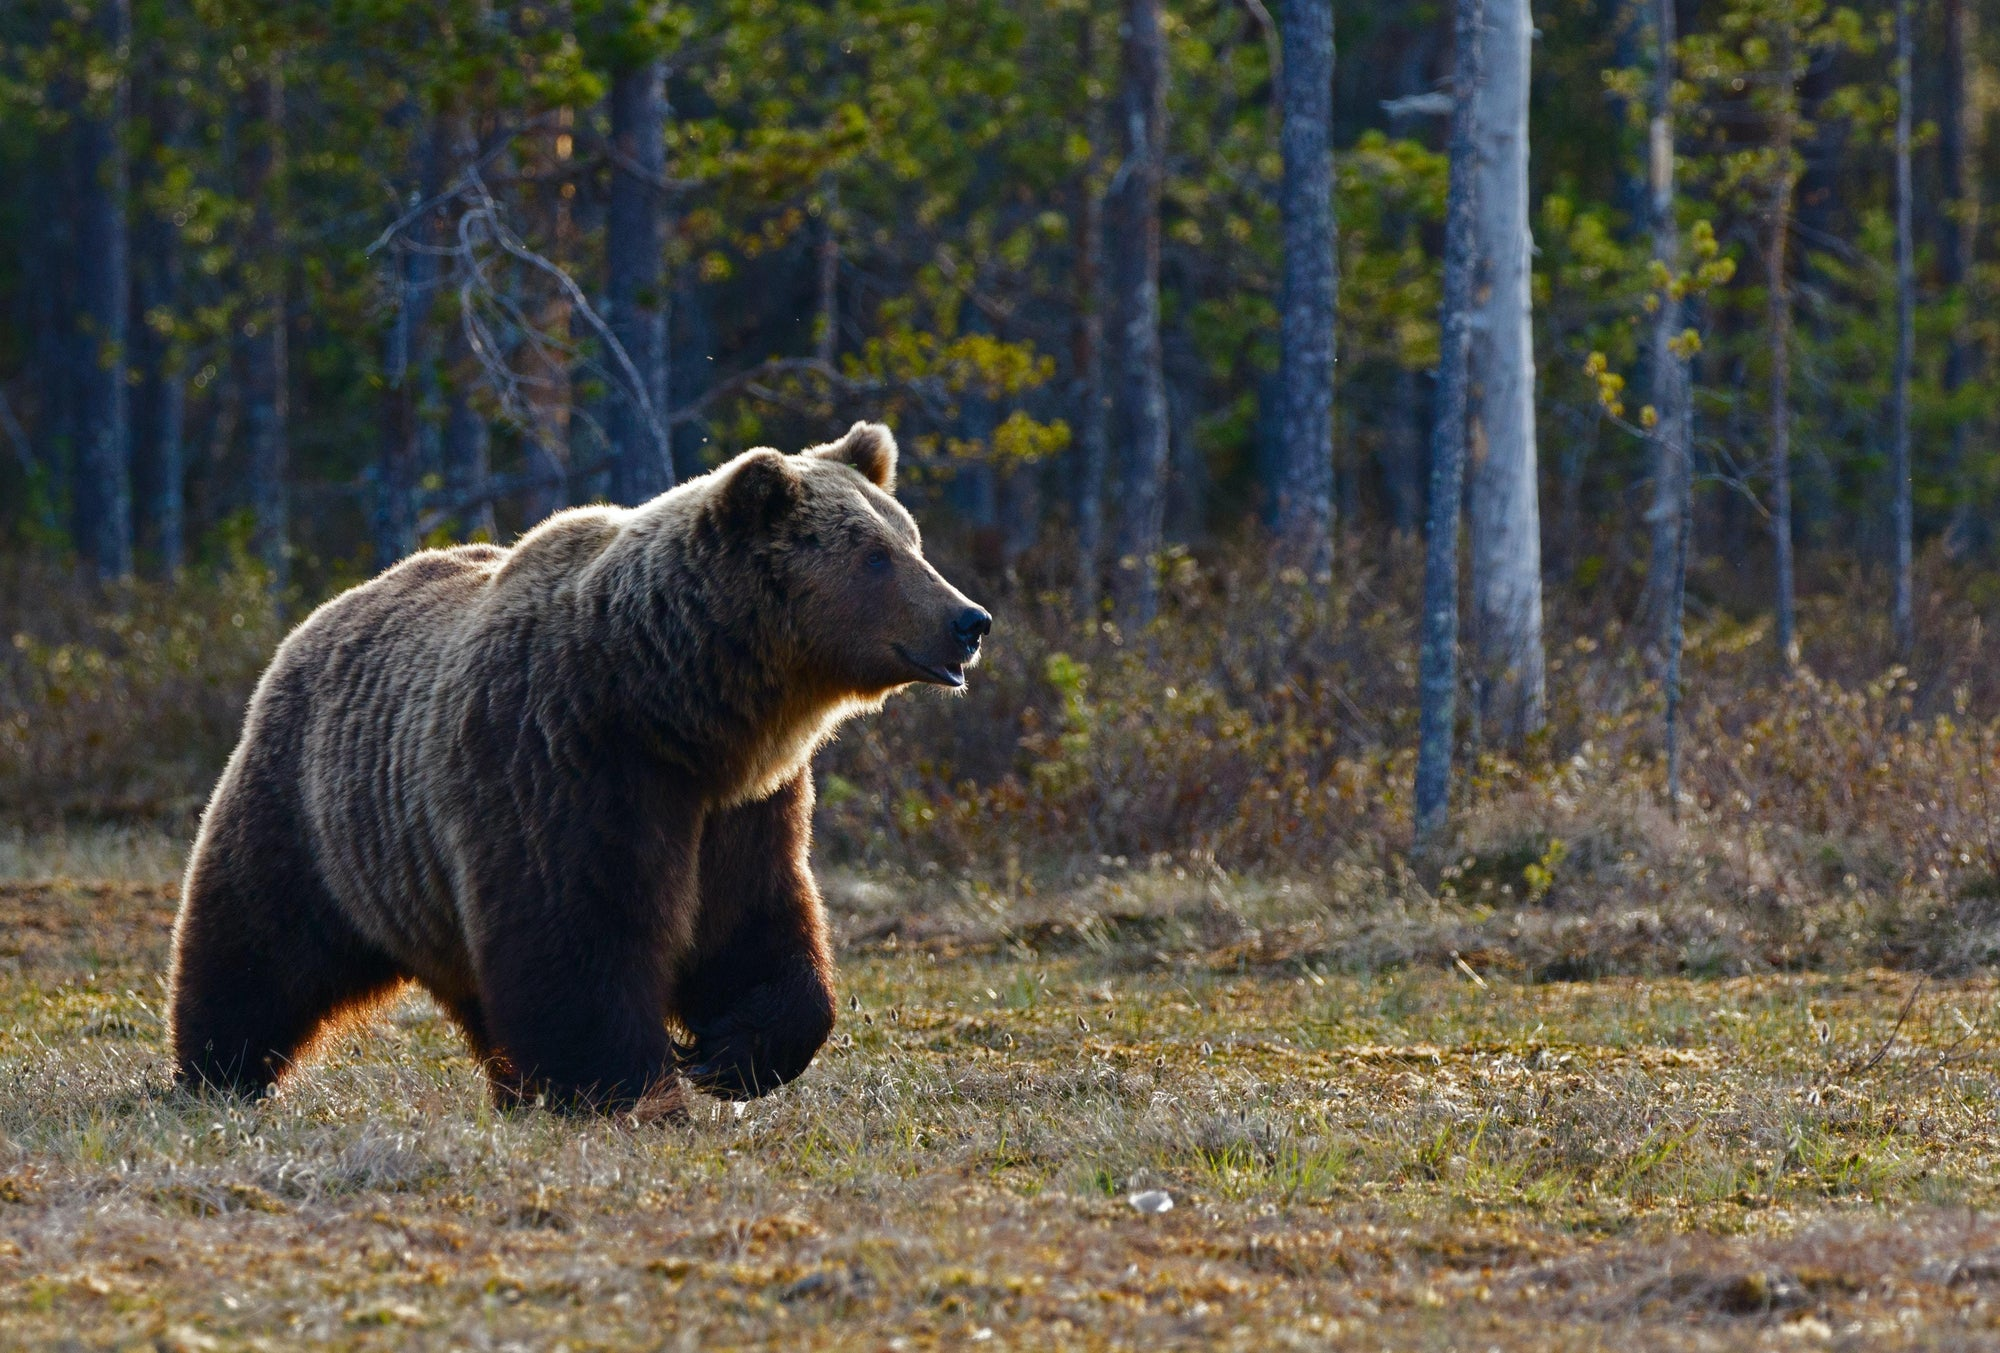 Top Tips for Avoiding Bears in the National Parks for 2020